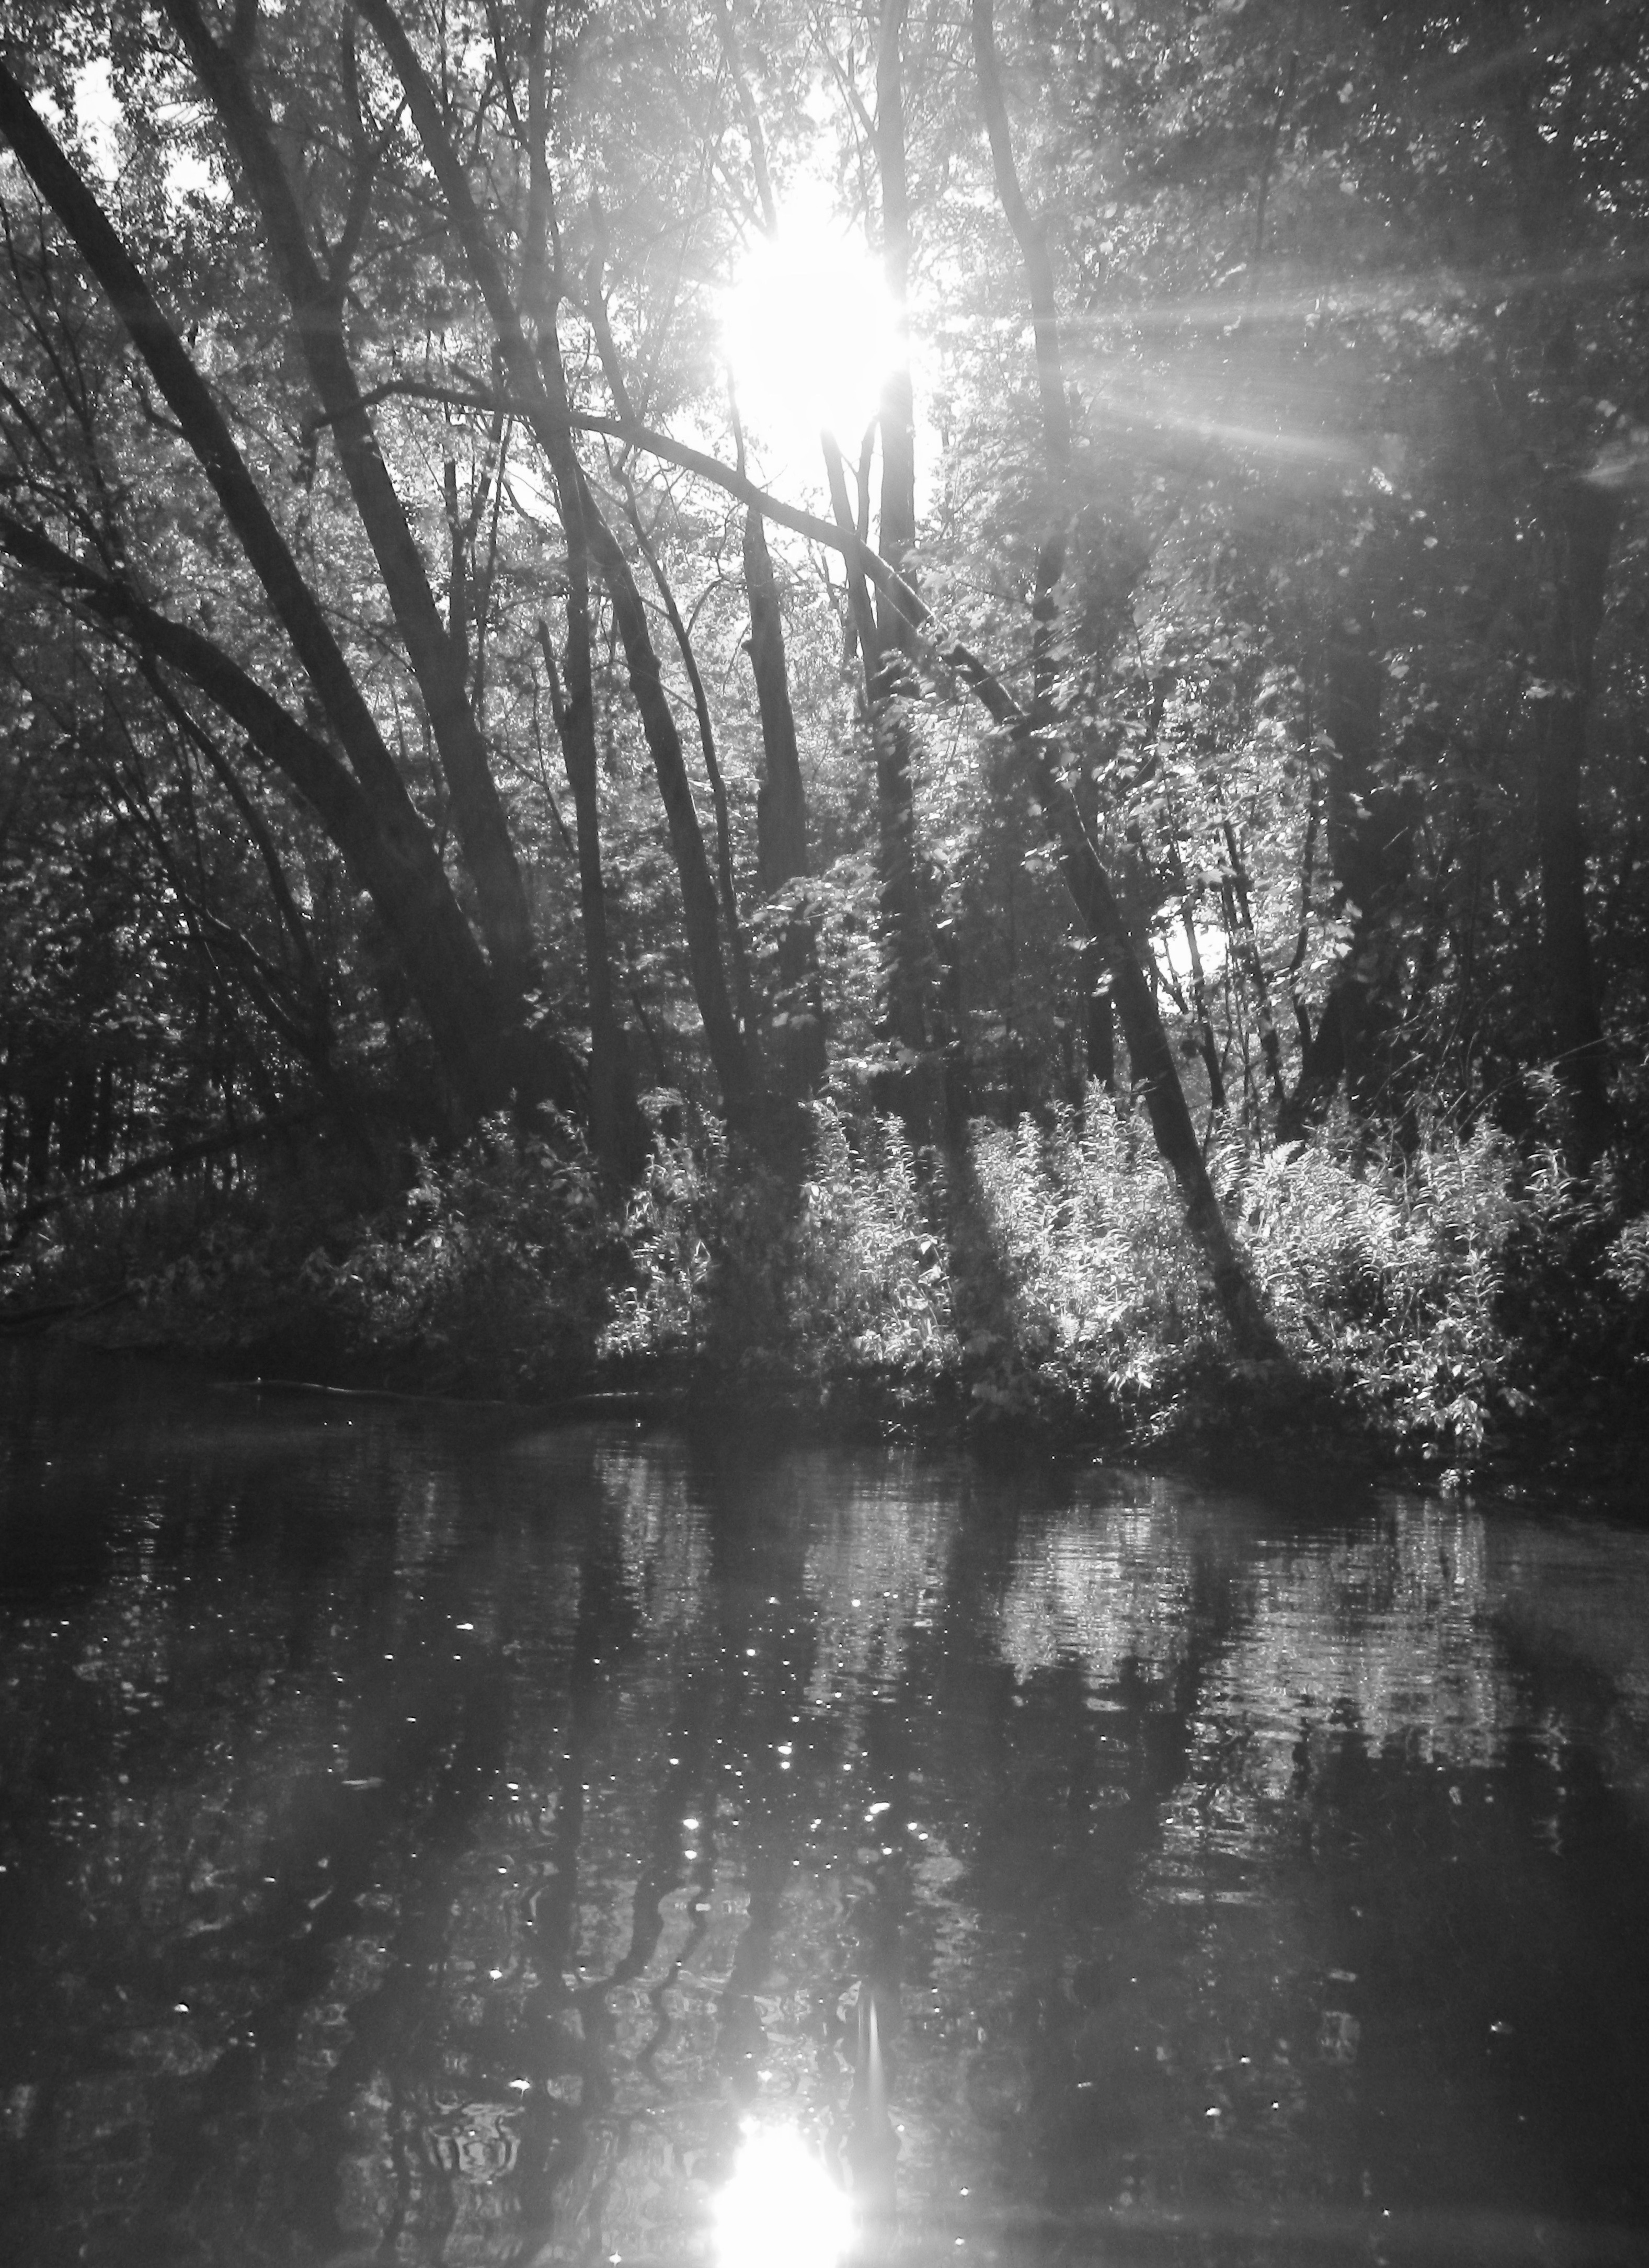 study-in-sun-and-shadow-on-rogue-river